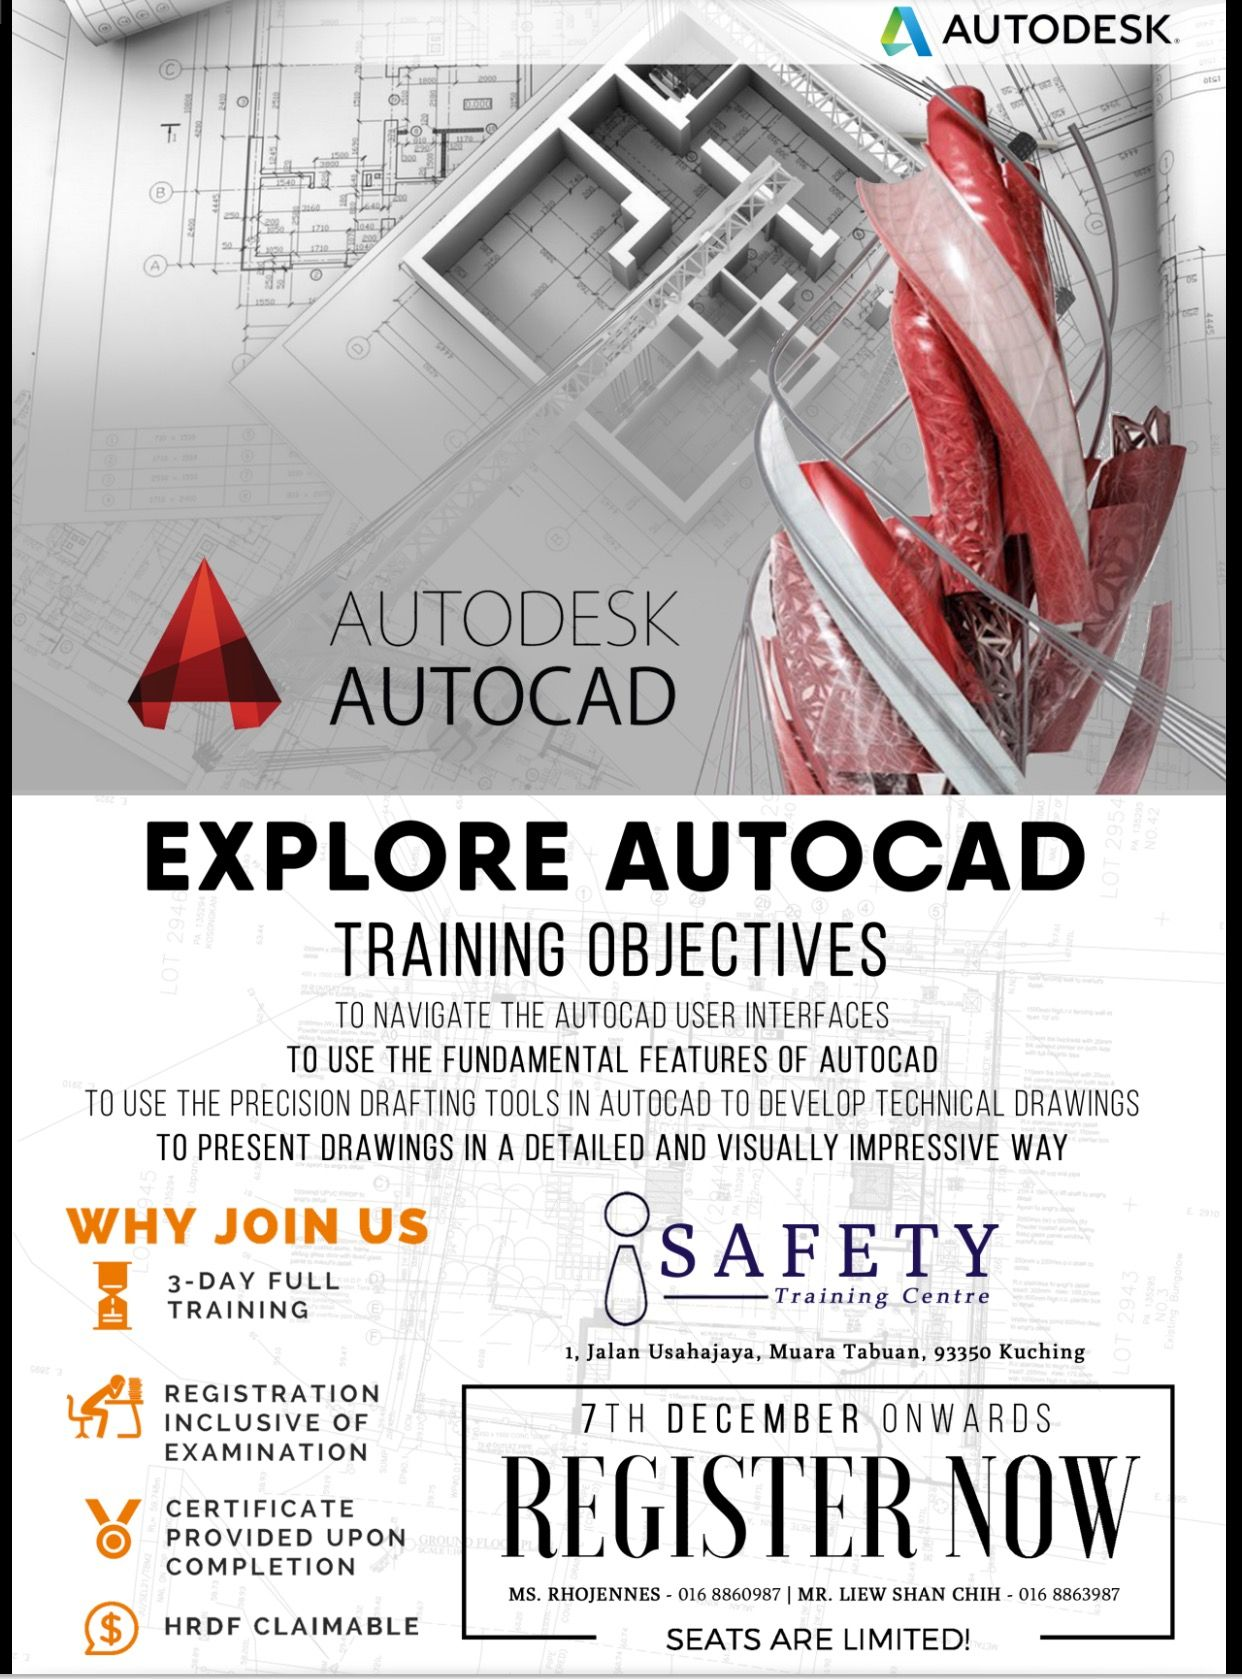 Autocad 2d training certified by autodesk explore master certified by autodesk explore master autocad training objectives to navigate the autocad user interfaces to use the fundamental feature of autocad to 1betcityfo Image collections